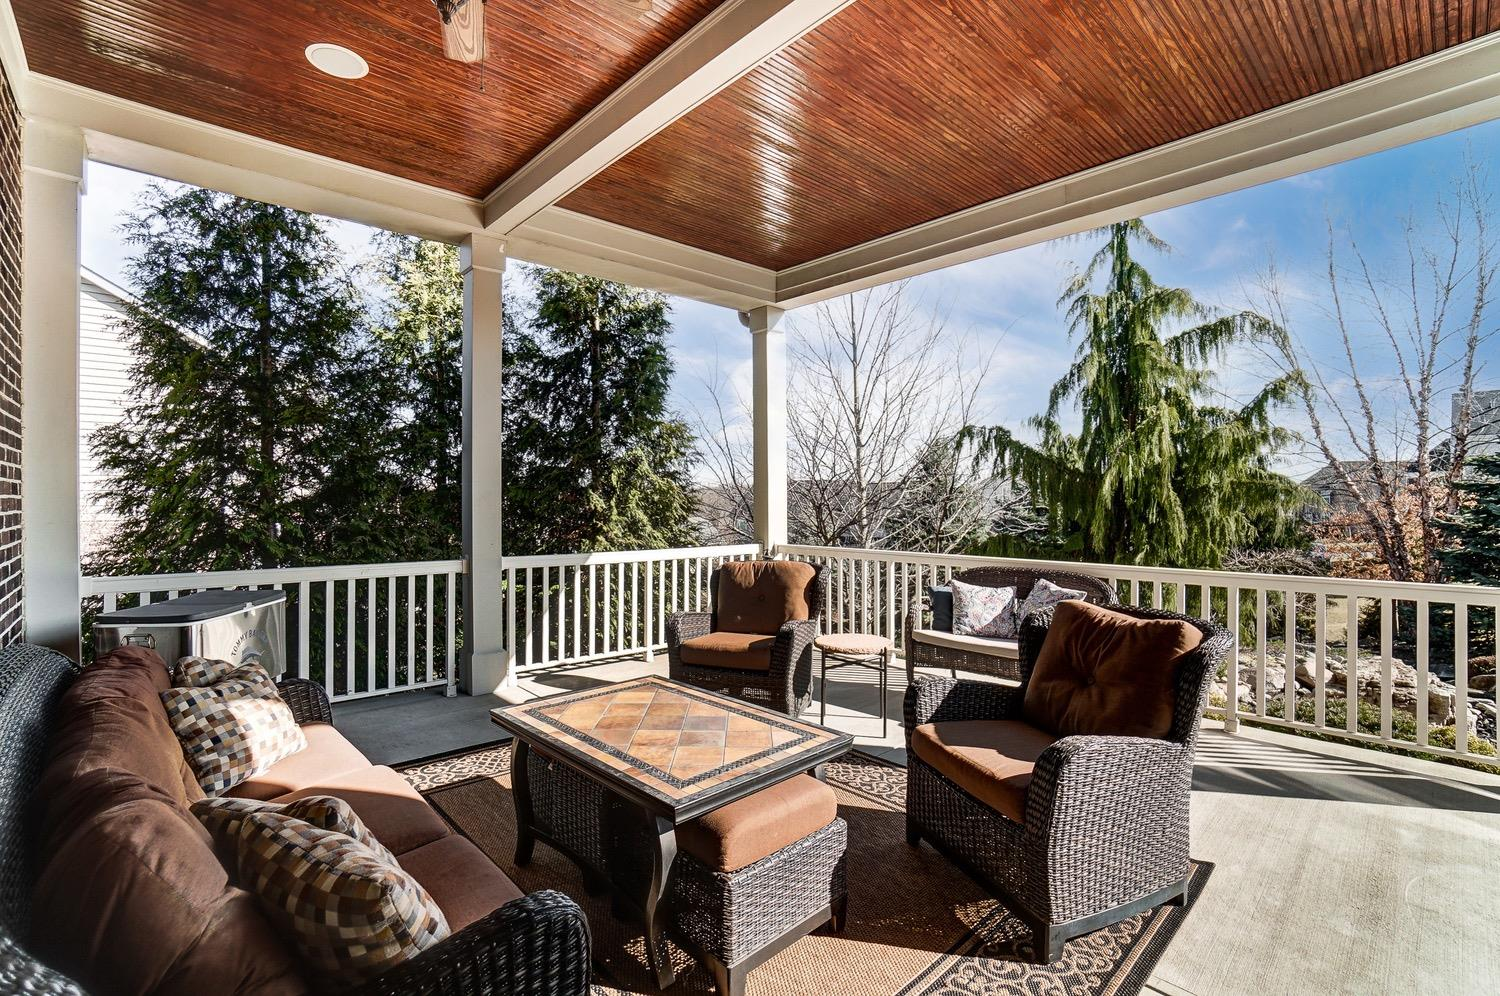 Covered patio w/ ceiling fan and speakers.